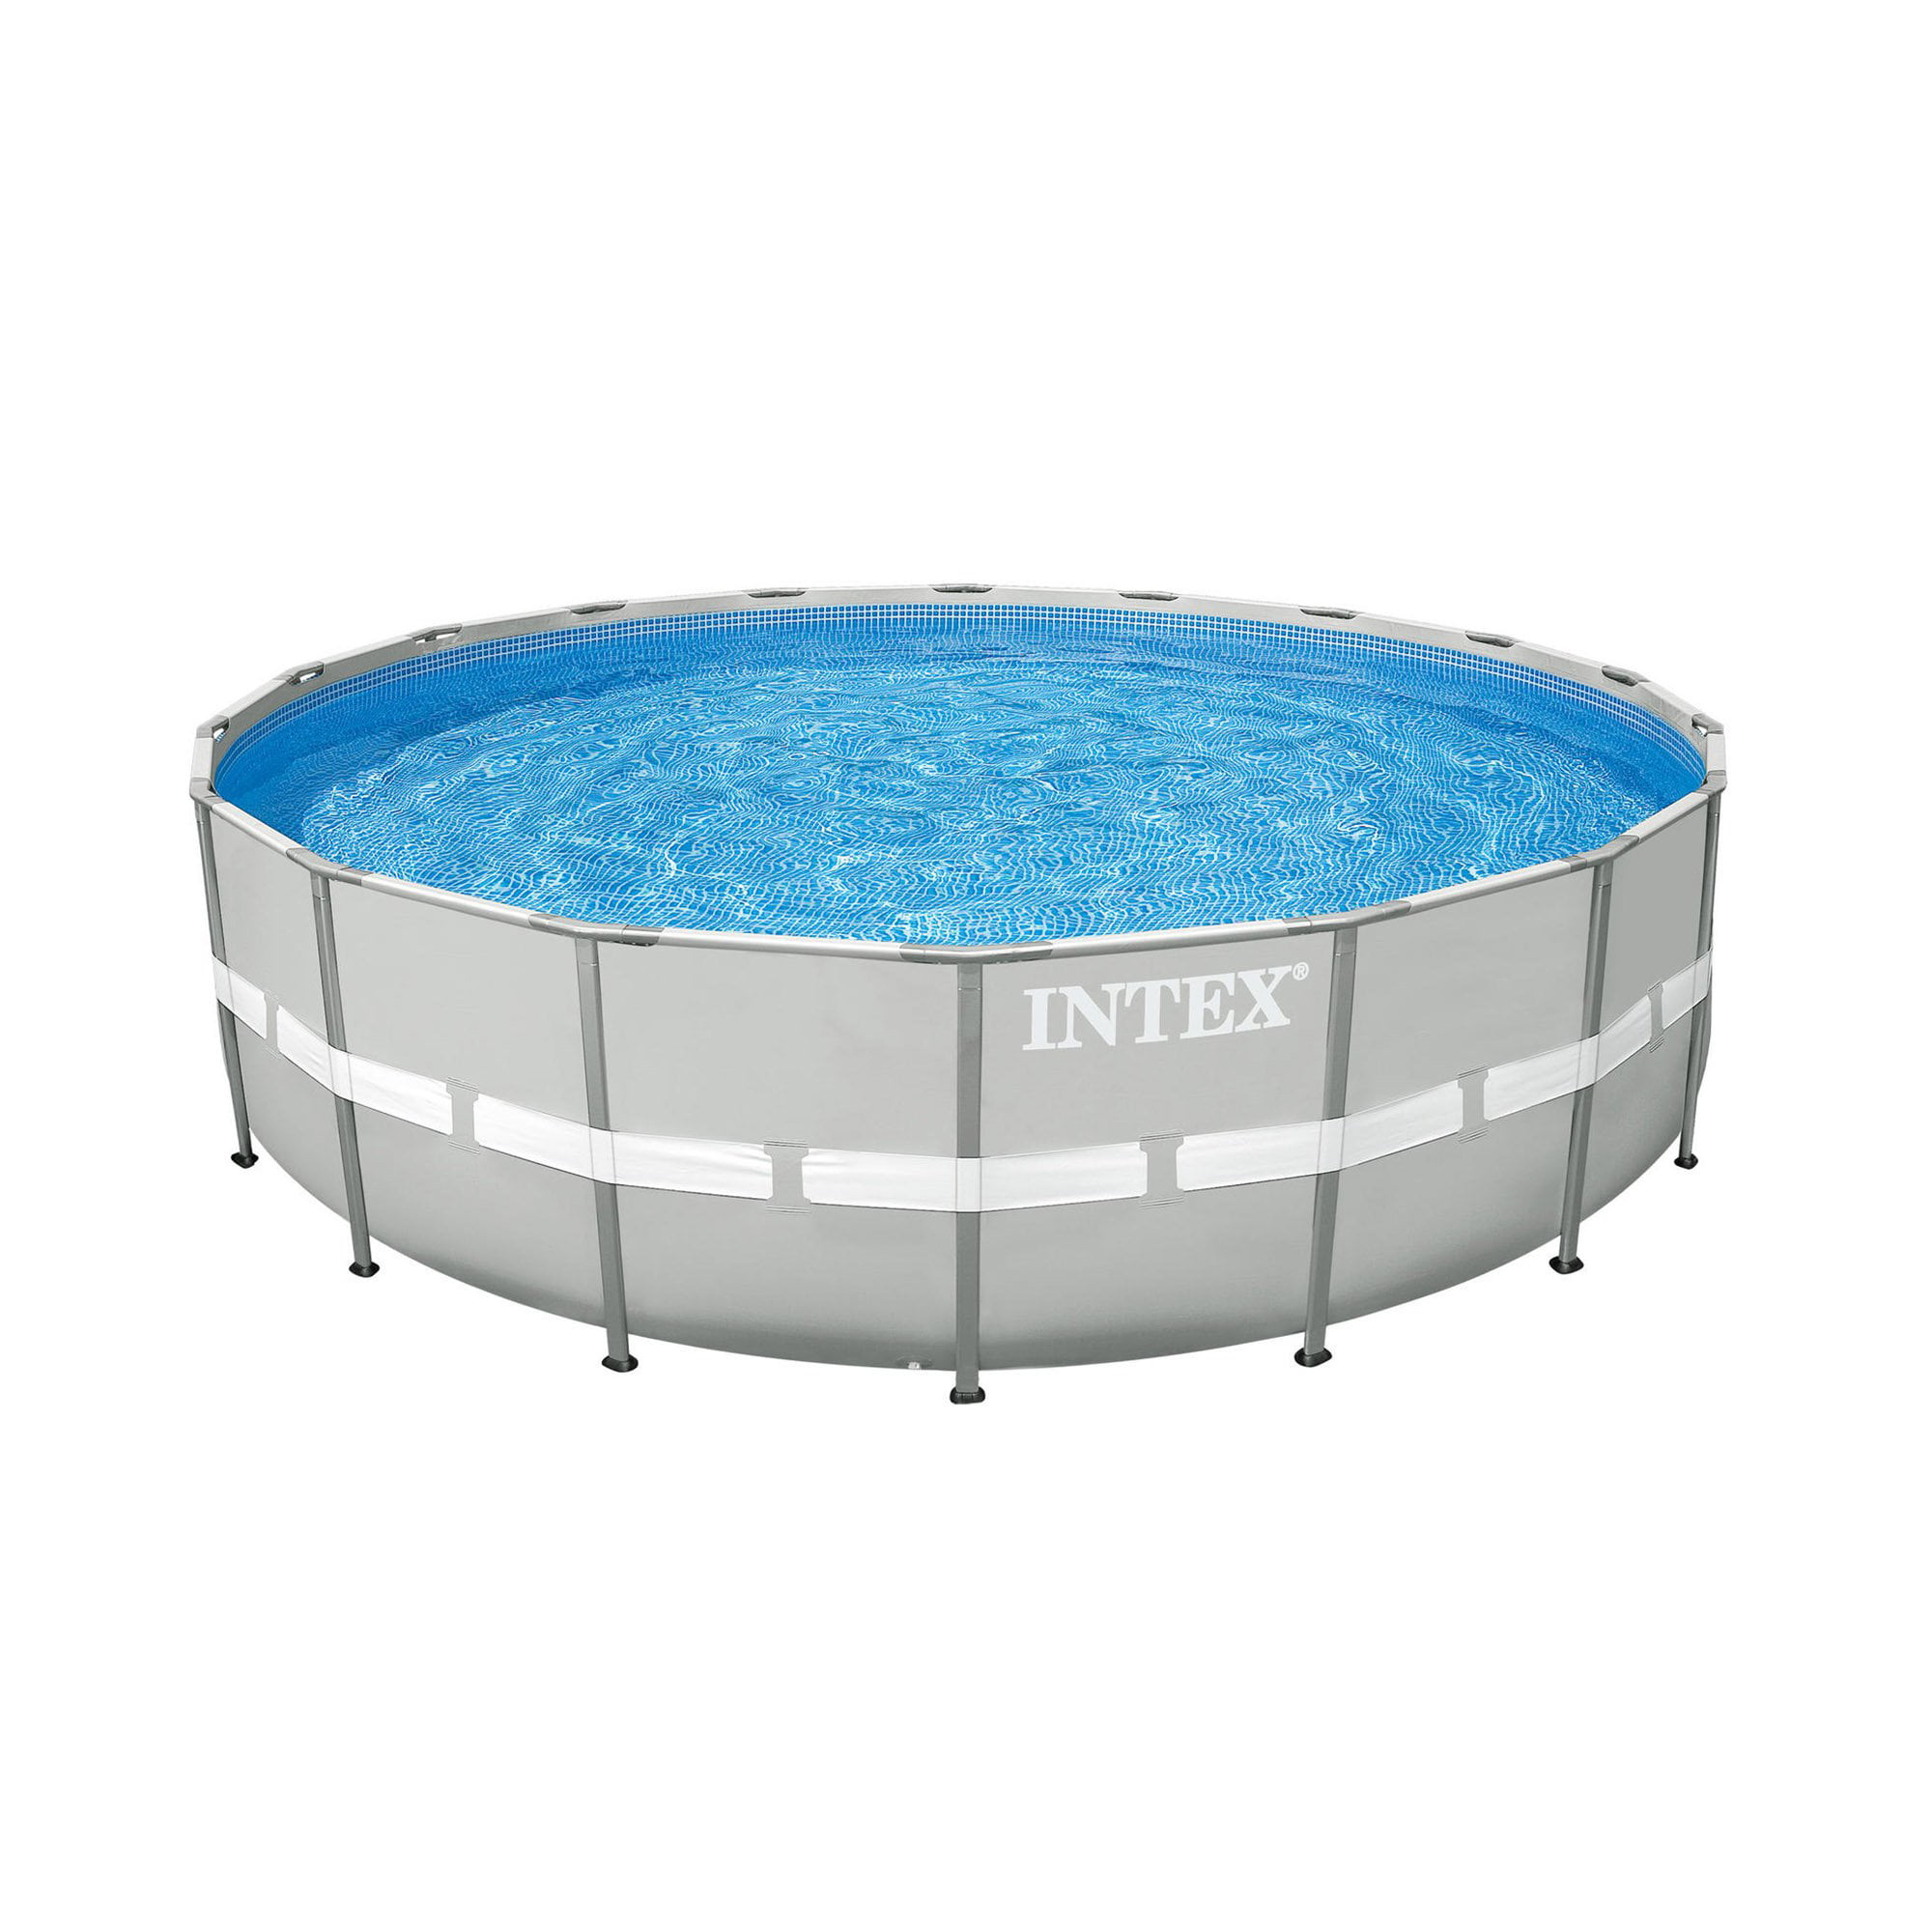 "Intex 24' x 52"" Ultra Frame Steel Frame Above Ground Swimming Pool Set with Pump by Intex"